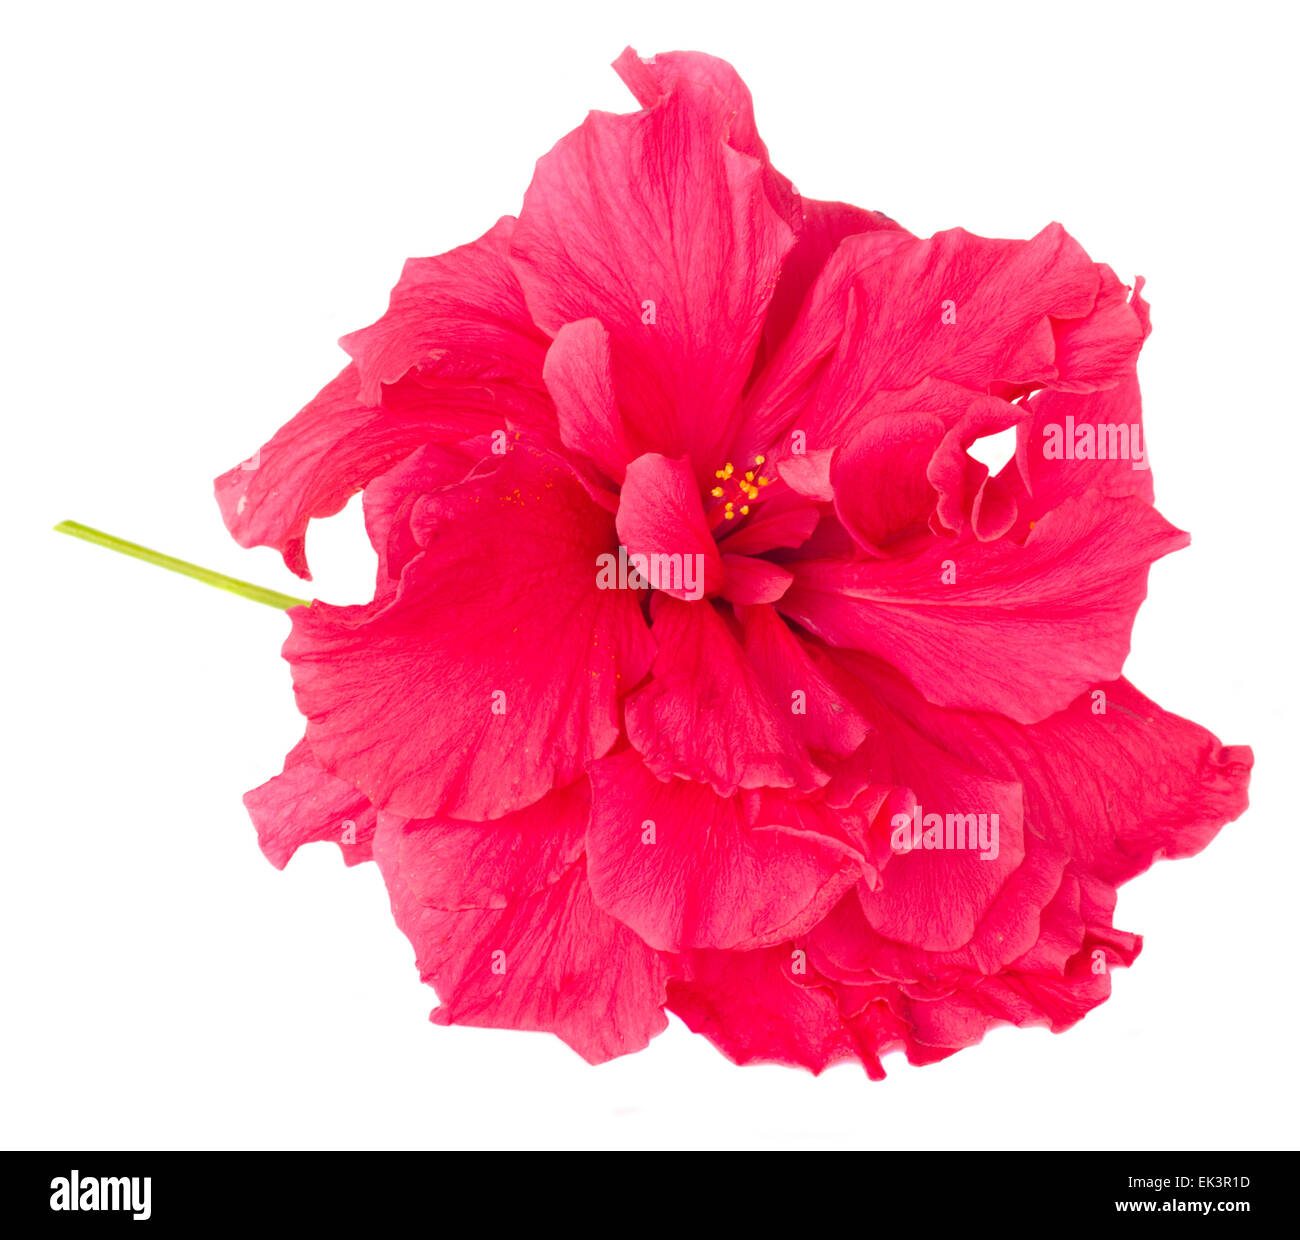 Border Of Colorful Hibiscus Flowers Stock Photo 80603865 Alamy